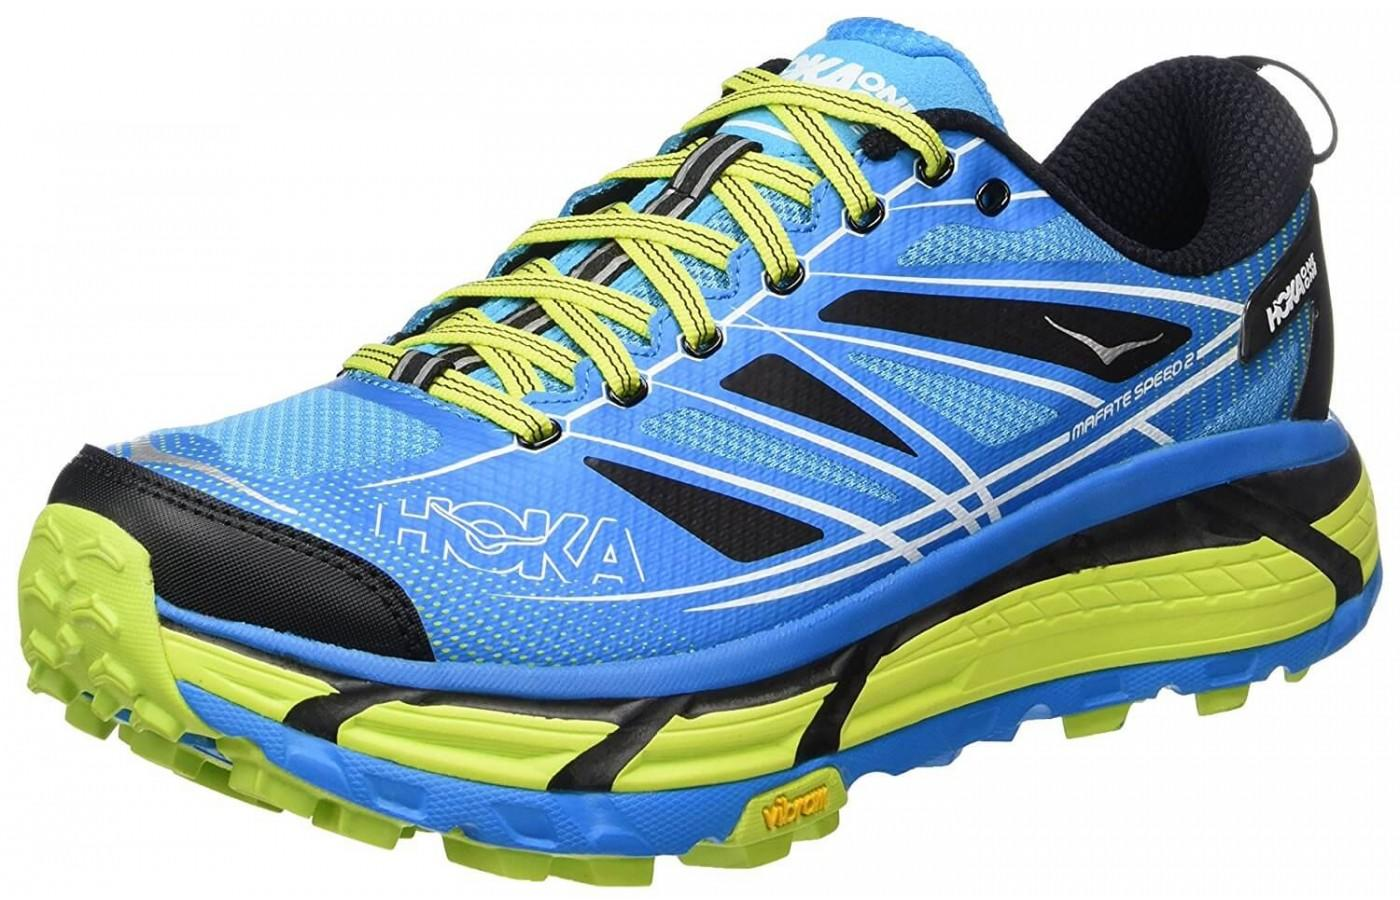 Hoka One One Mafate Speed 2 is a maximally cushioned shoe